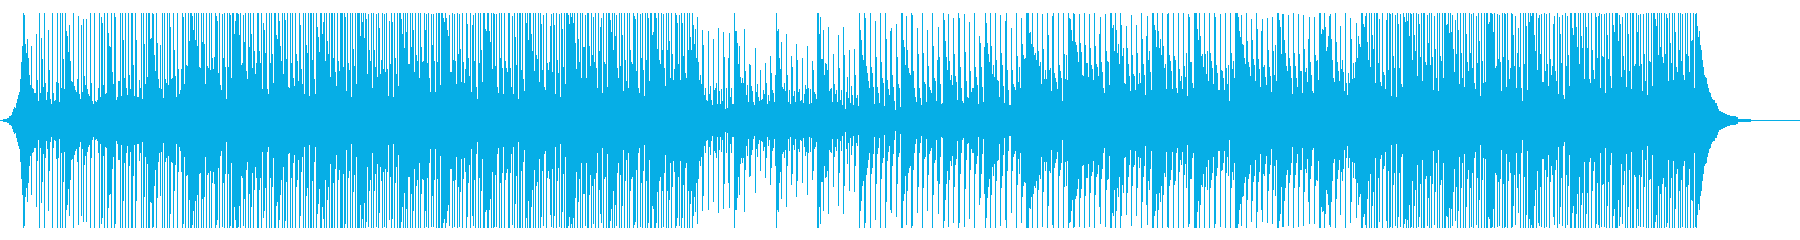 Inspiration for your project's reproduced waveform